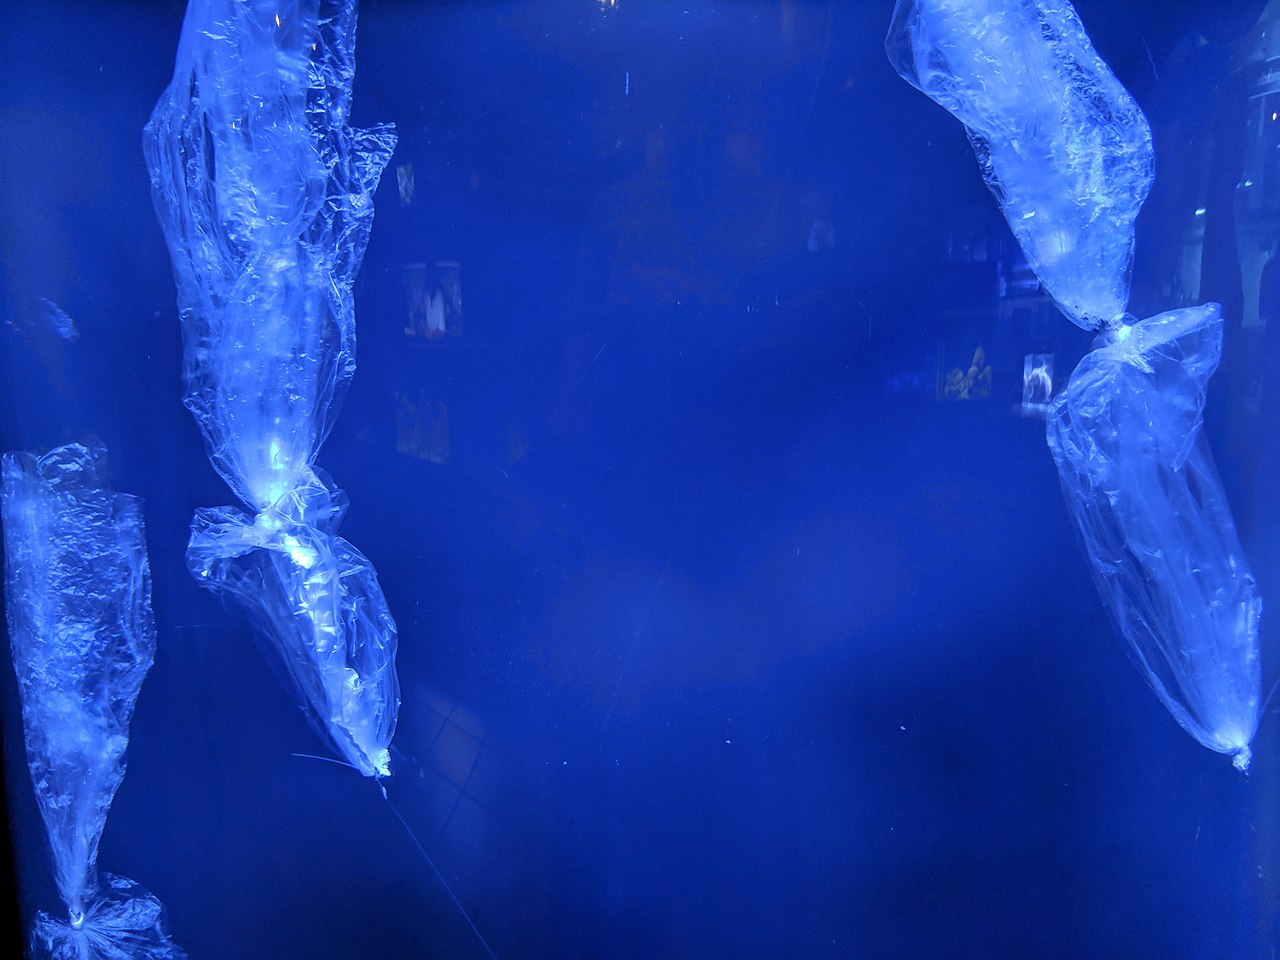 plastic bag in the water that looks like jellyfish. photo by U+1F360 Wikimedia Commons